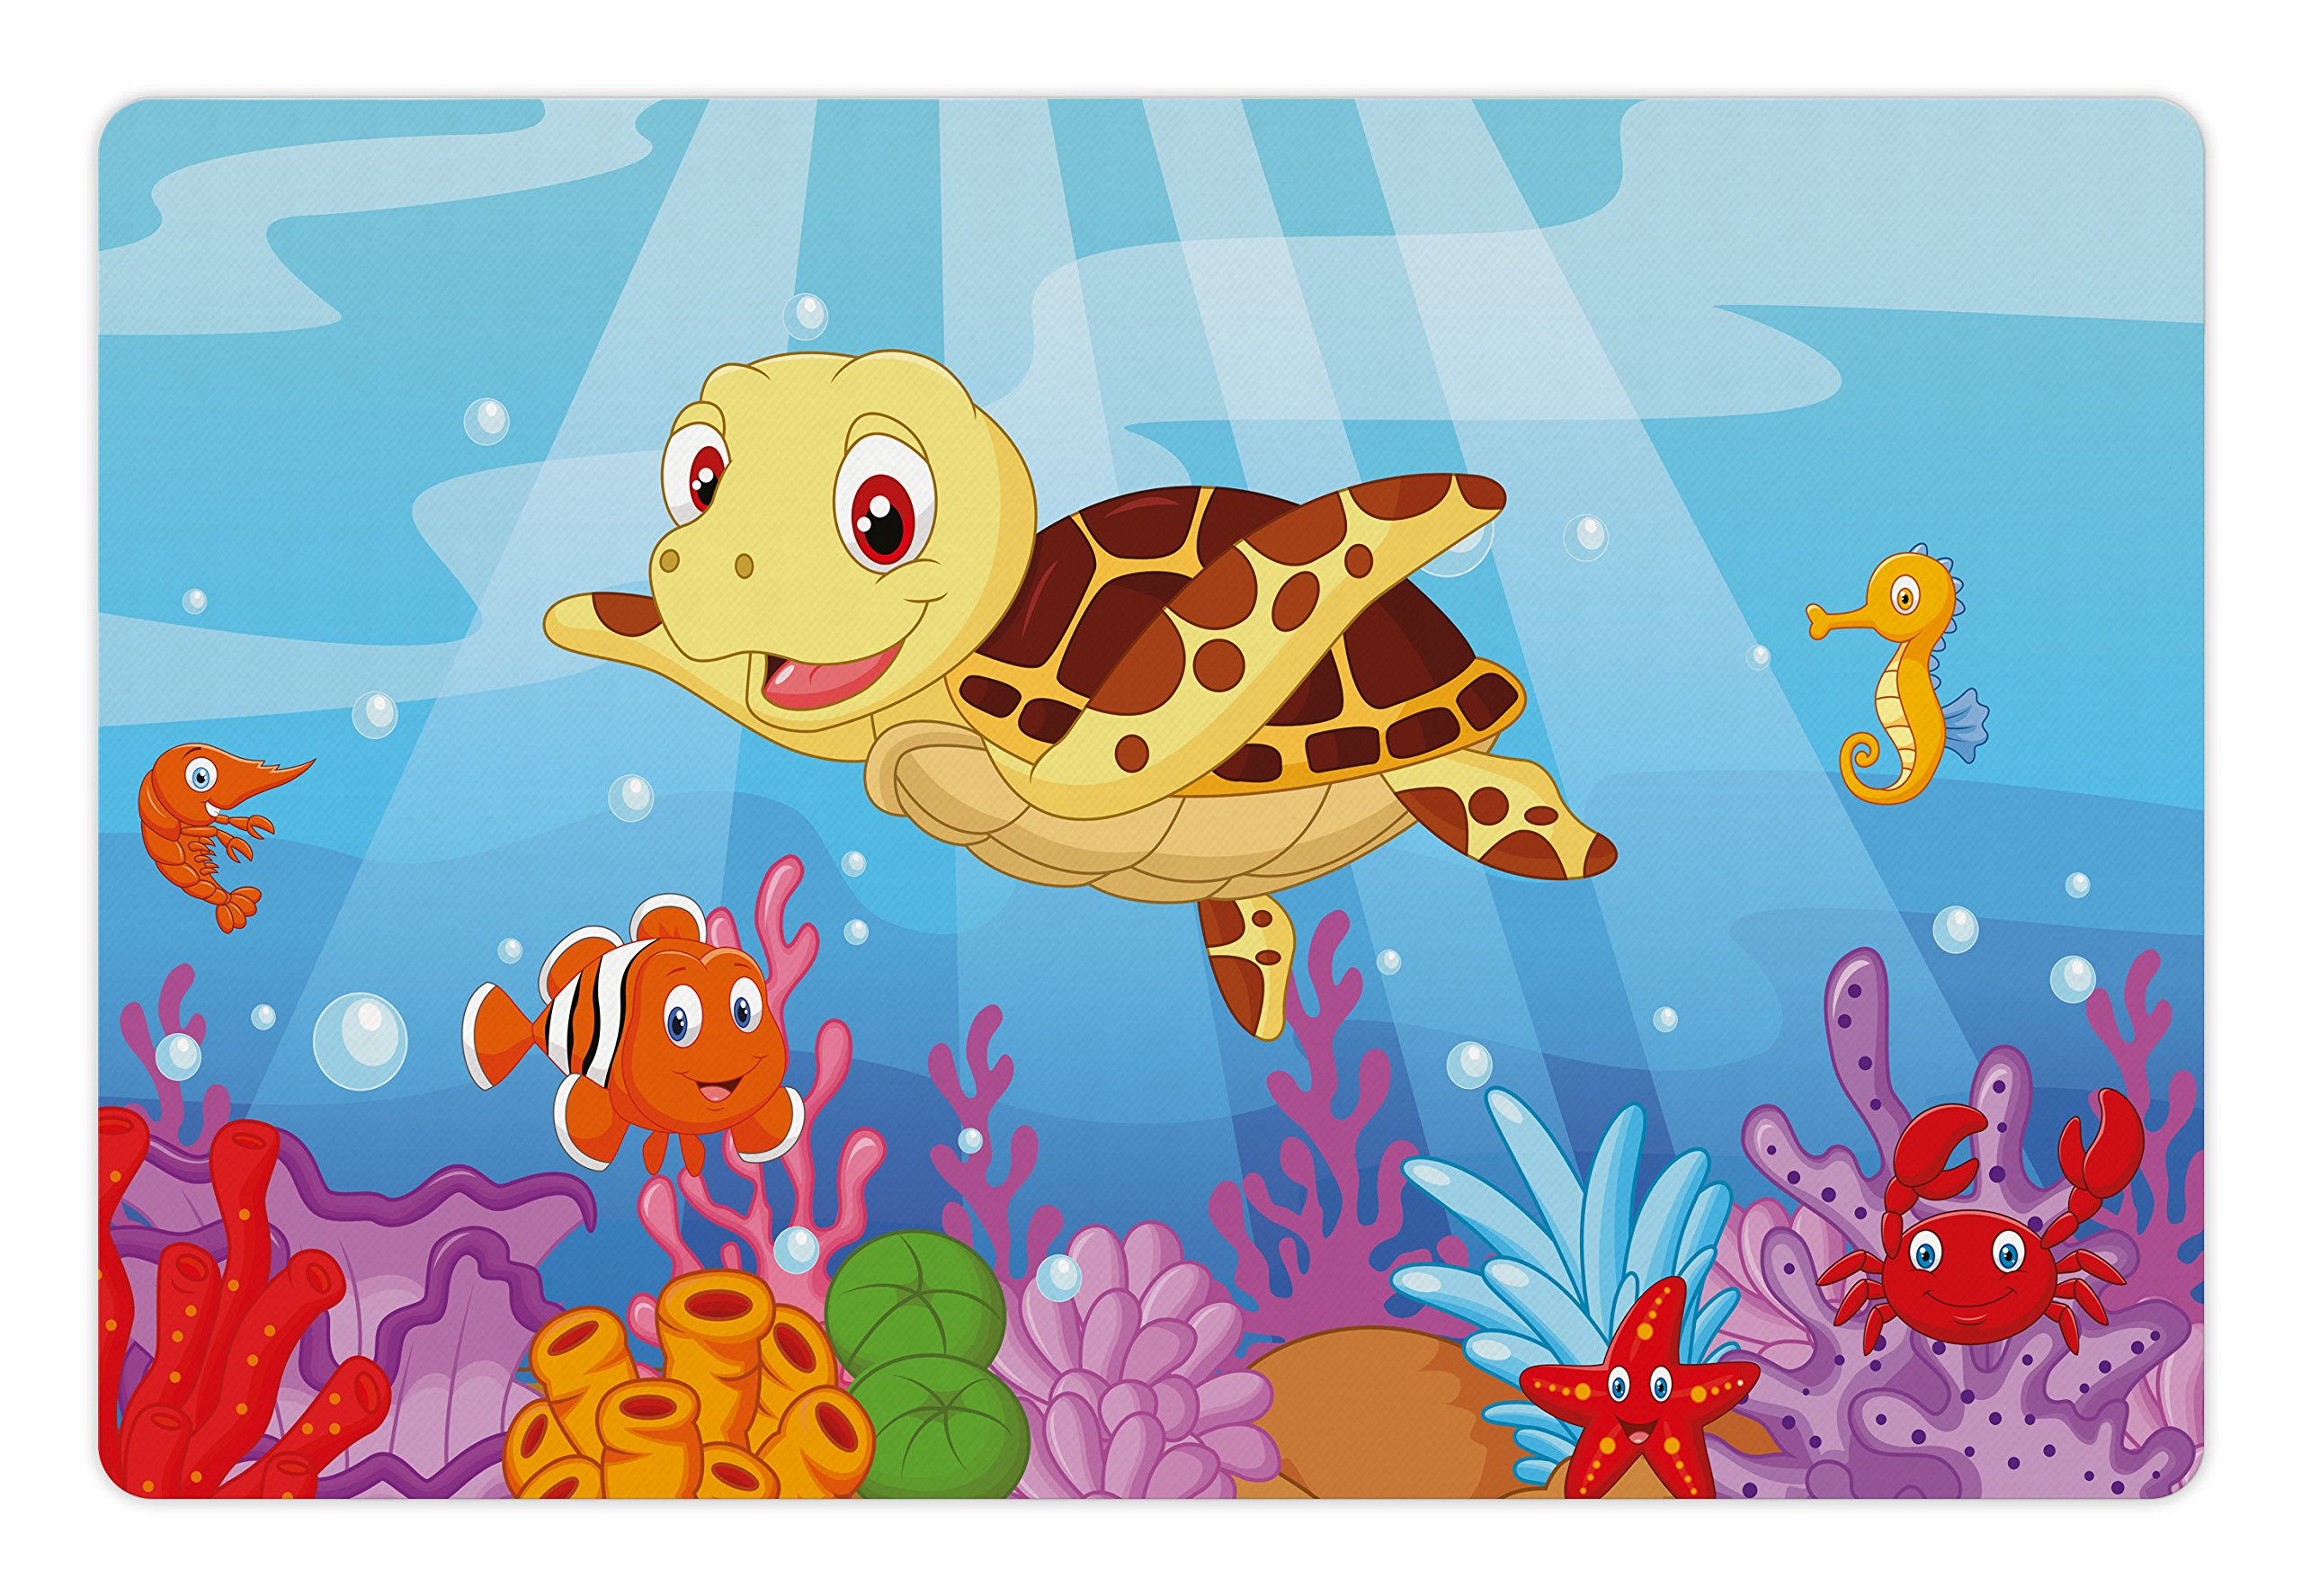 Ambesonne Turtle Pet Mat for Food and Water, Funny Adorable Cartoon Style Underwater Sea Animals Baby Turtle and Fish Collection, Rectangle Non-Slip Rubber Mat for Dogs and Cats, Multicolor by Ambesonne (Image #1)